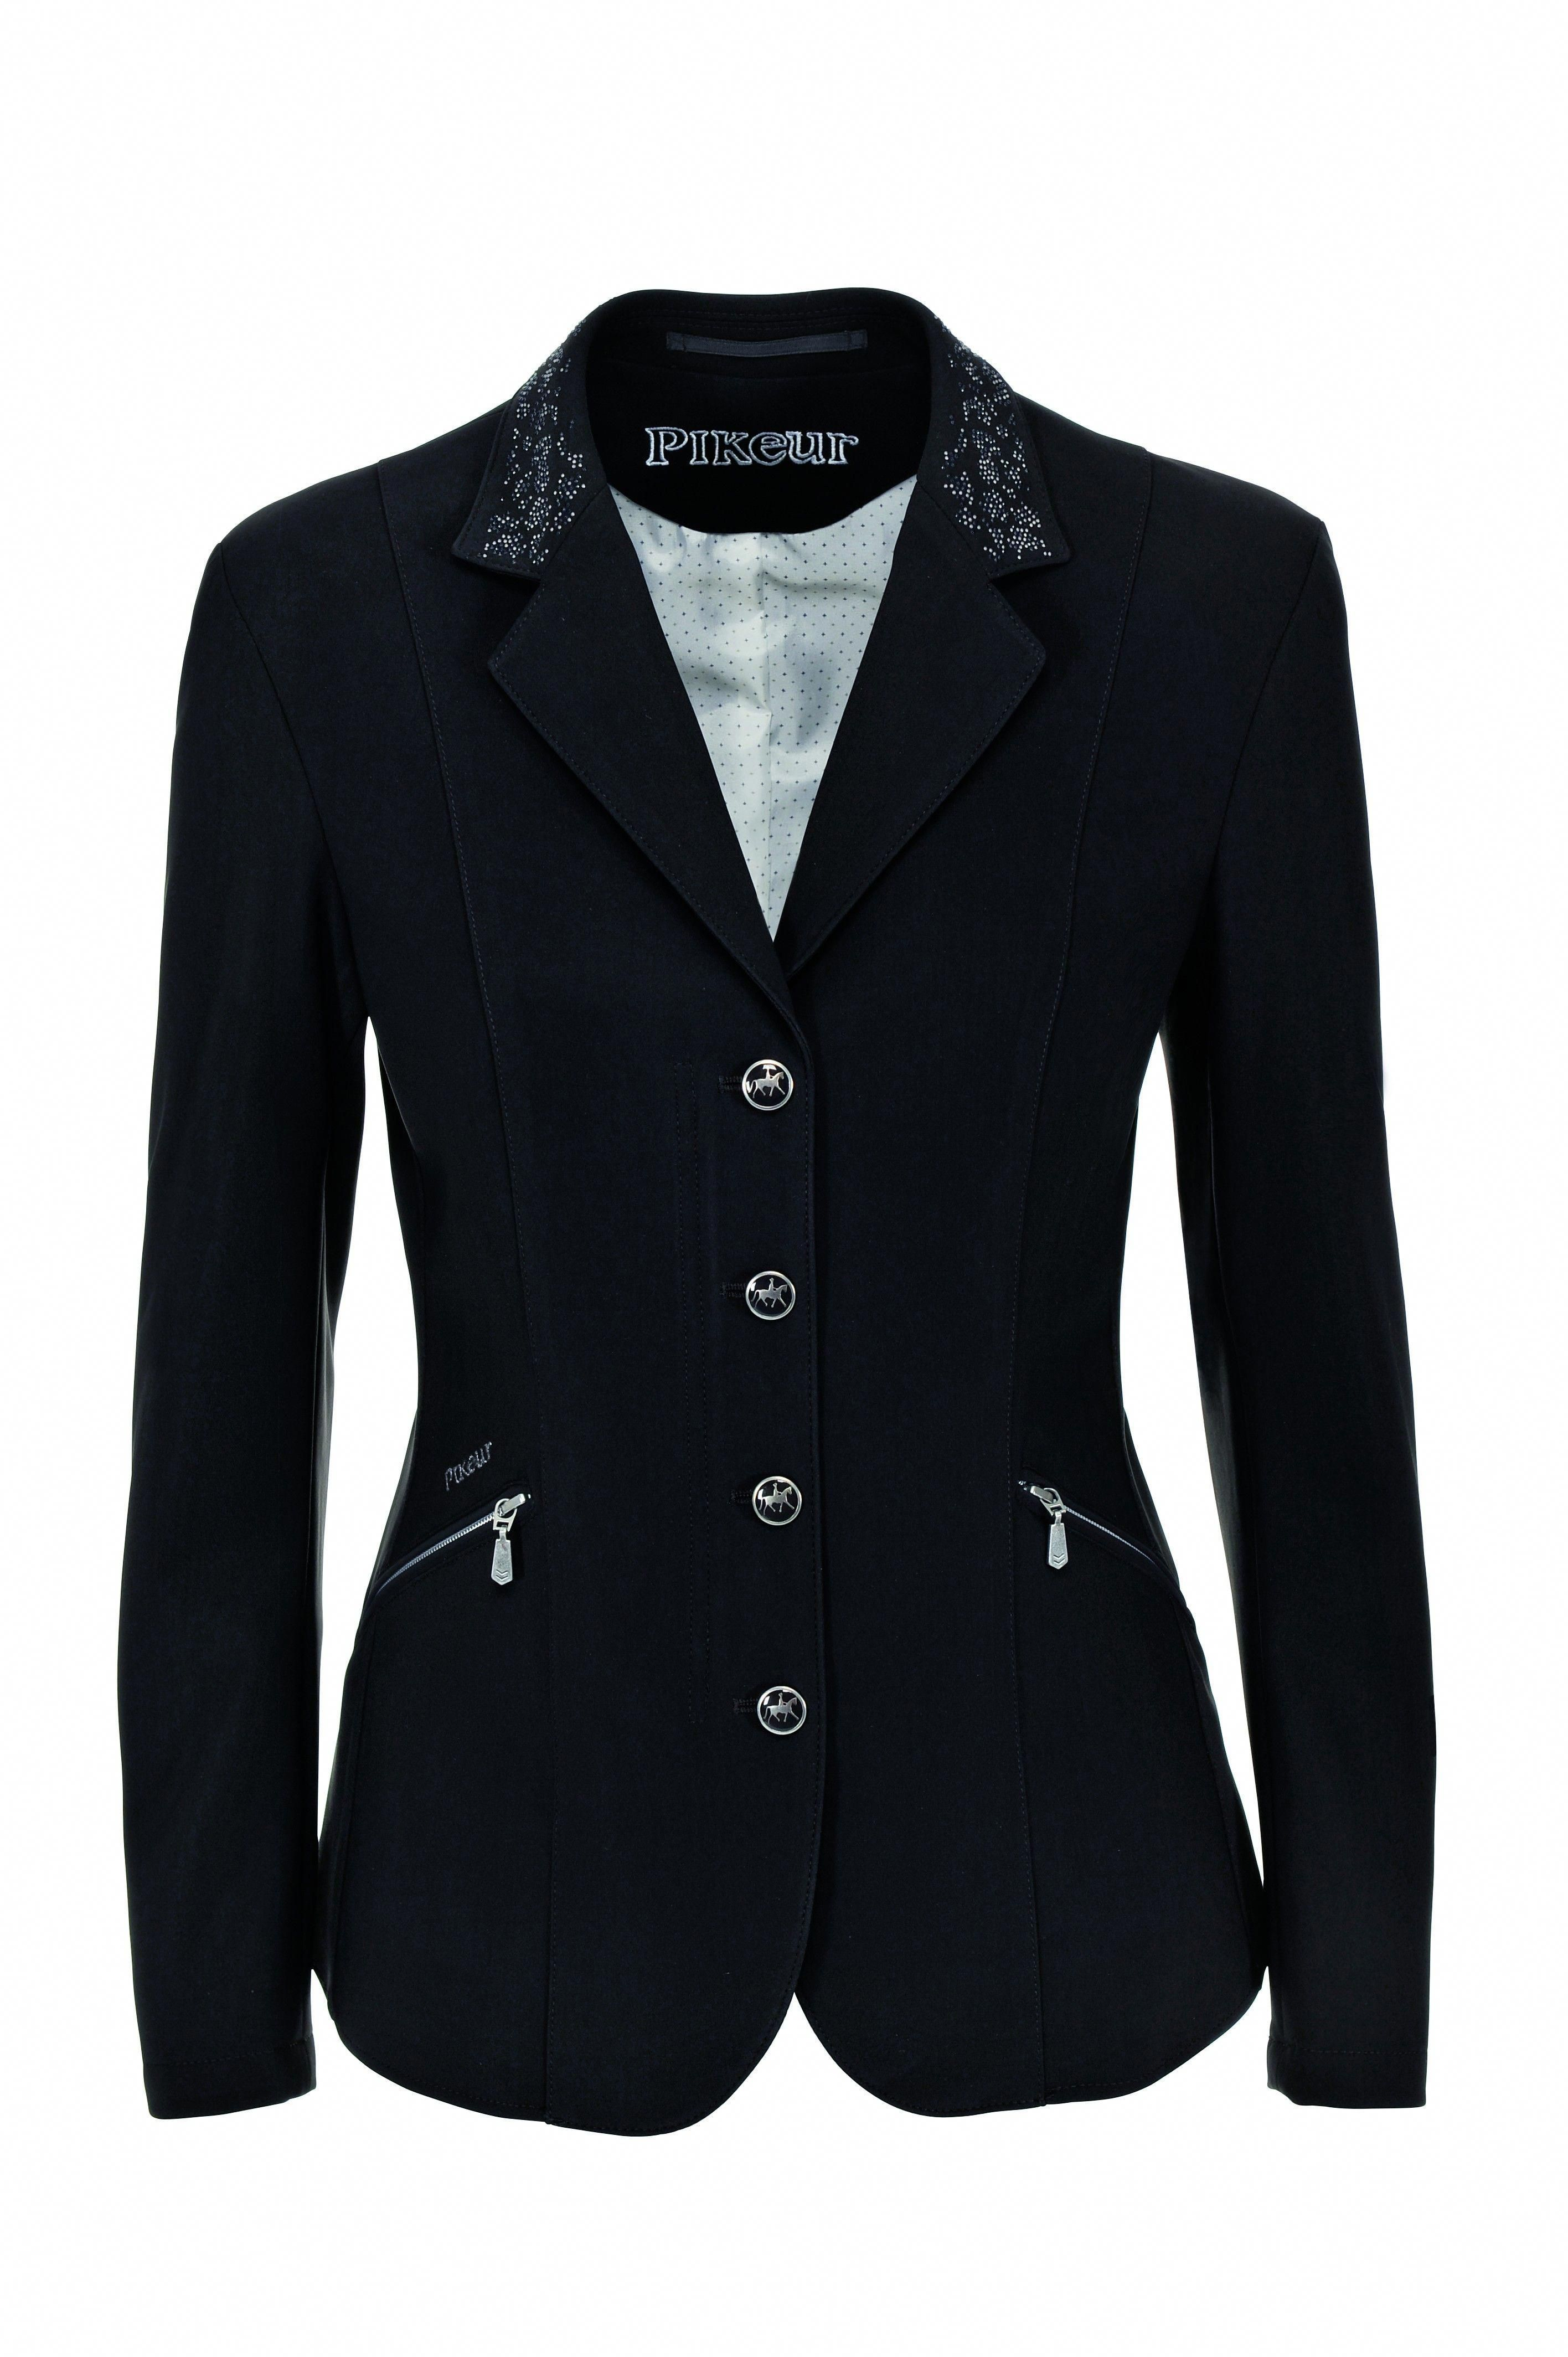 Pikeur Saphira Ladies Competition Jacket Sparkly Horseridingstyle Equestrianfashion Equestrianlifestyle Eques Show Jackets Equestrian Outfits Riding Outfit [ 4256 x 2832 Pixel ]